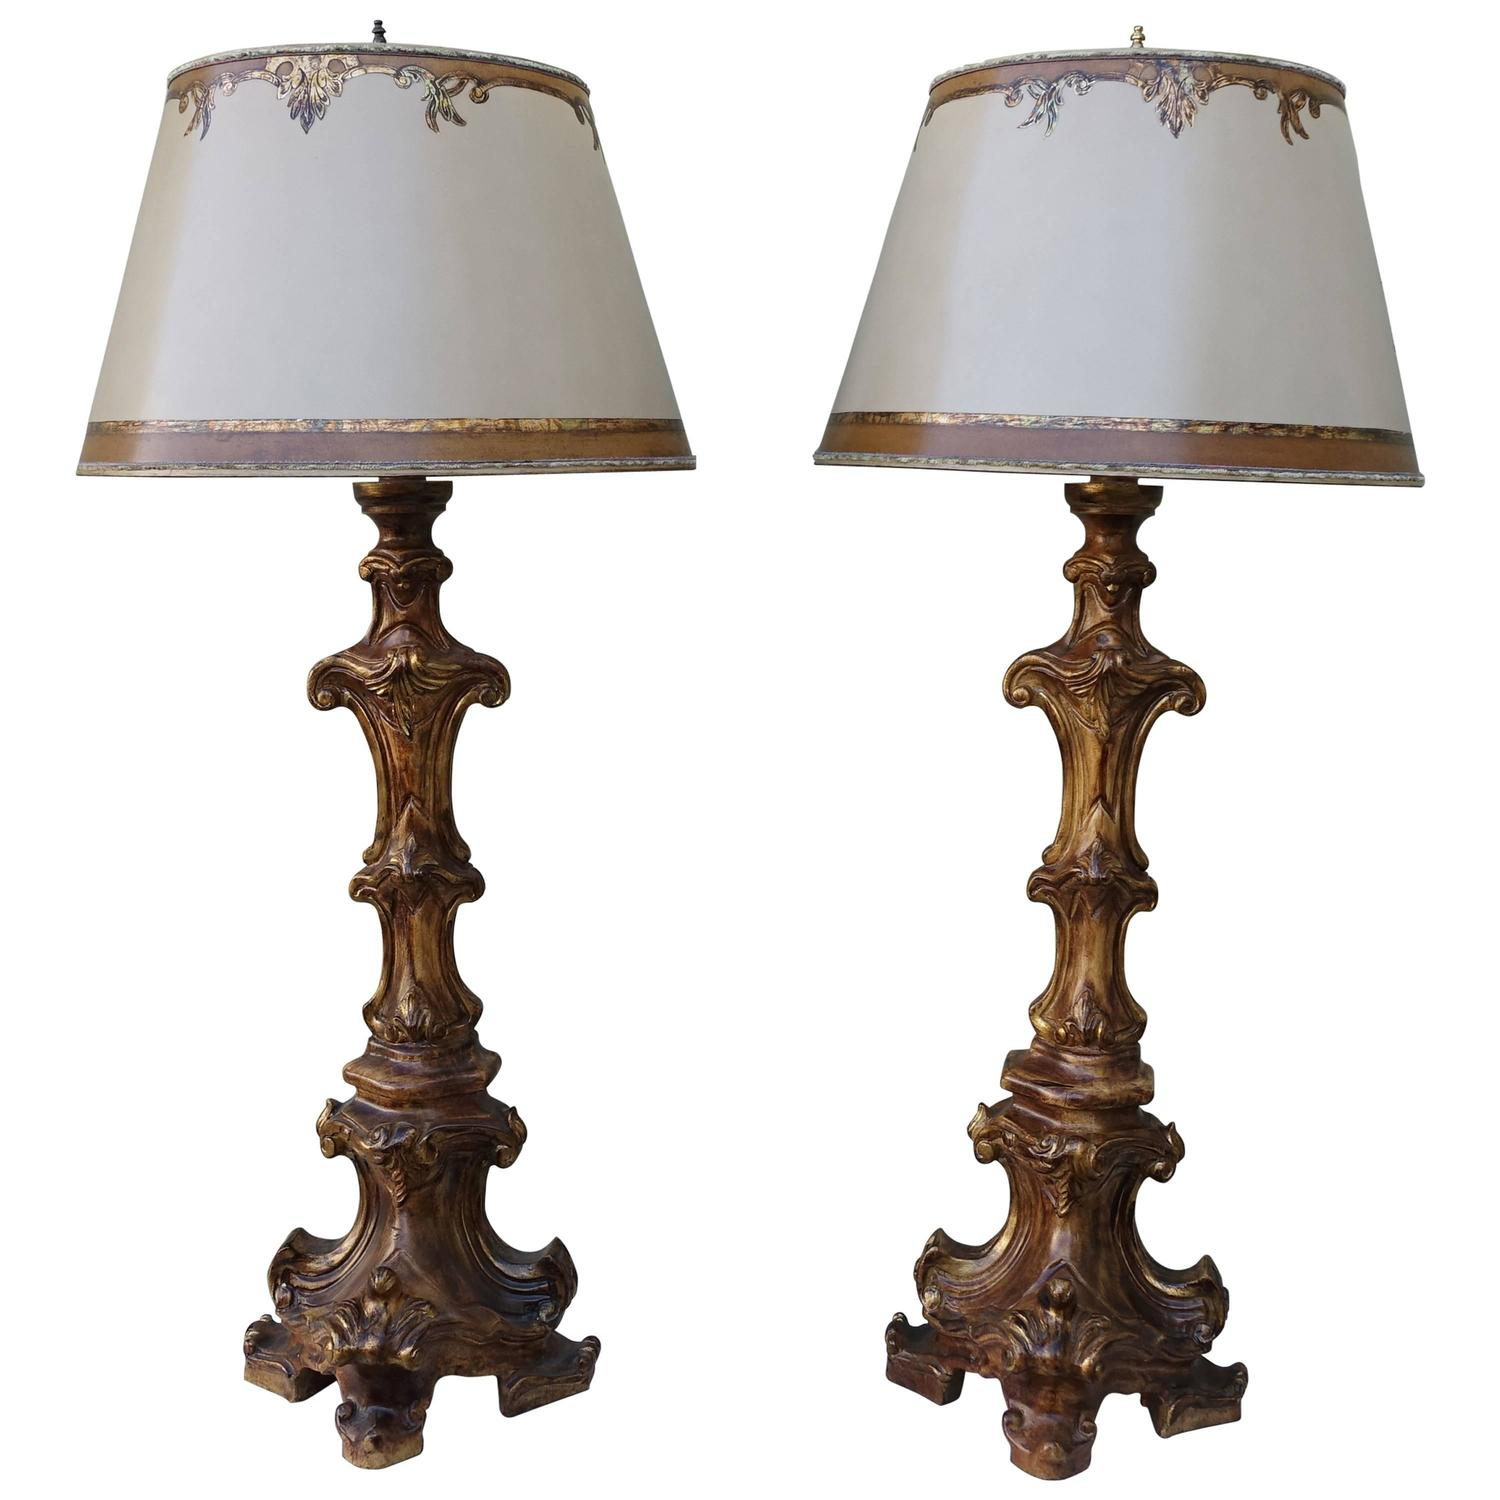 Carved Italian Candlestick Lamps With Parchment Shades